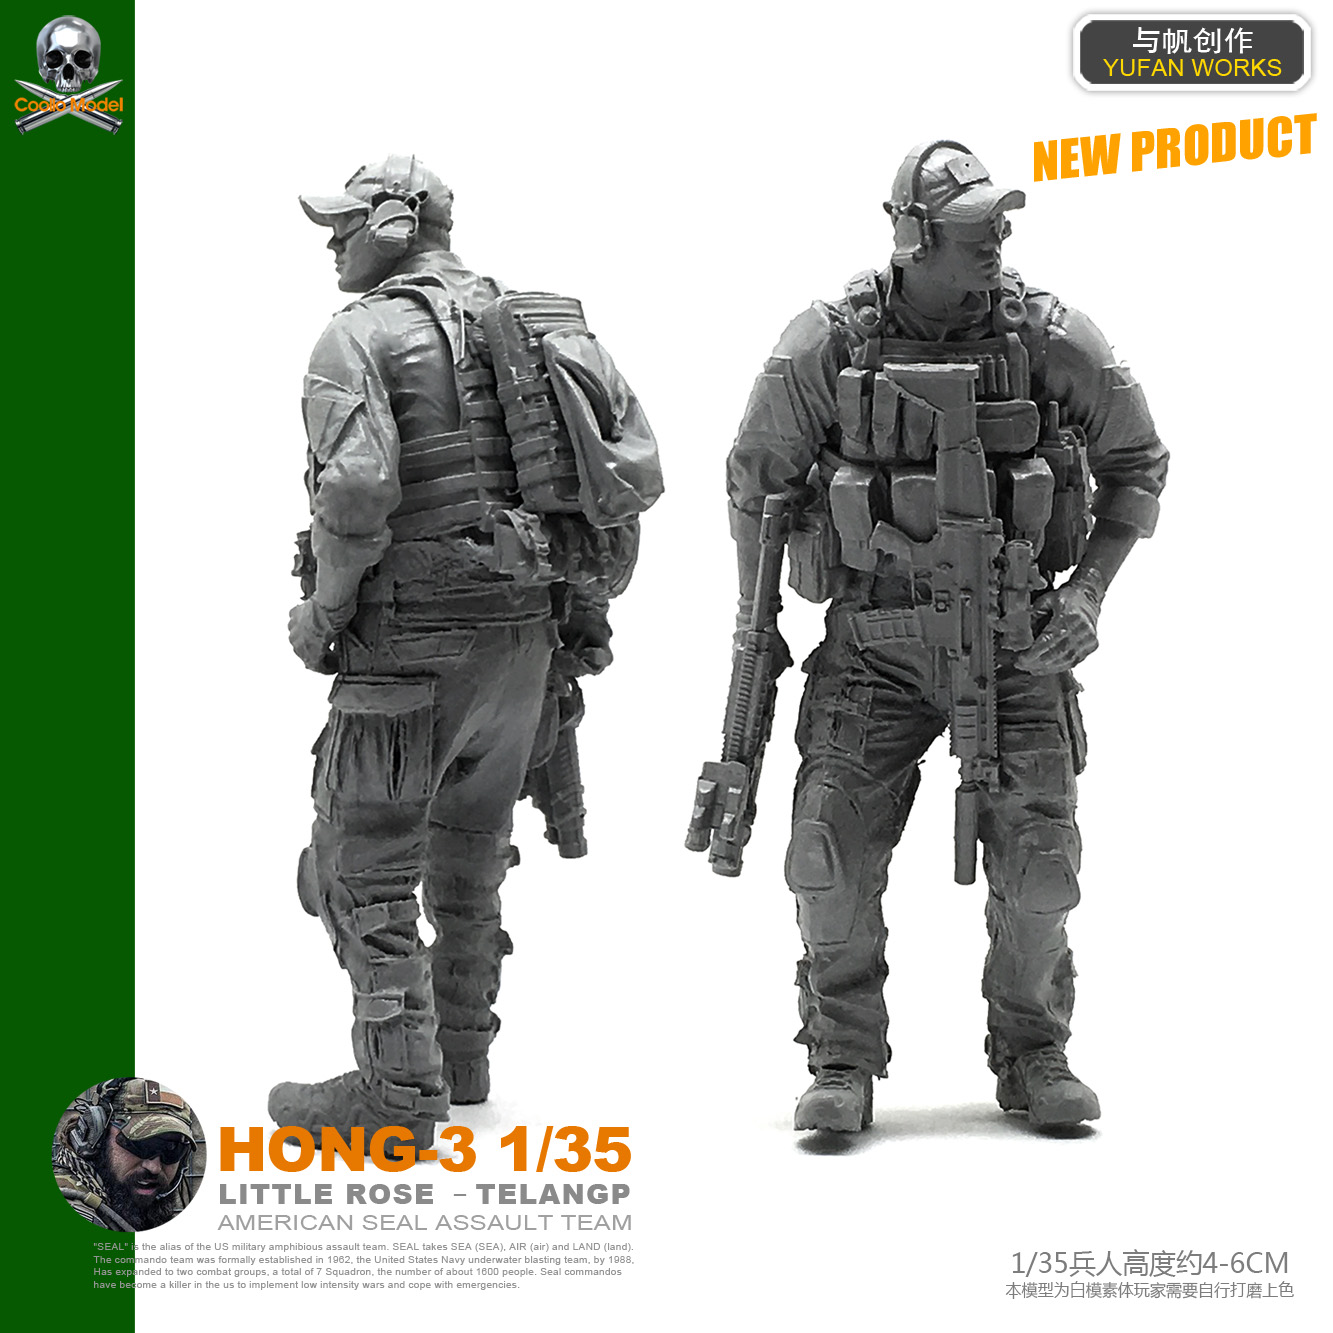 Yufan Model 1/35 Model Kits Resin Soldier Figure Hong-03